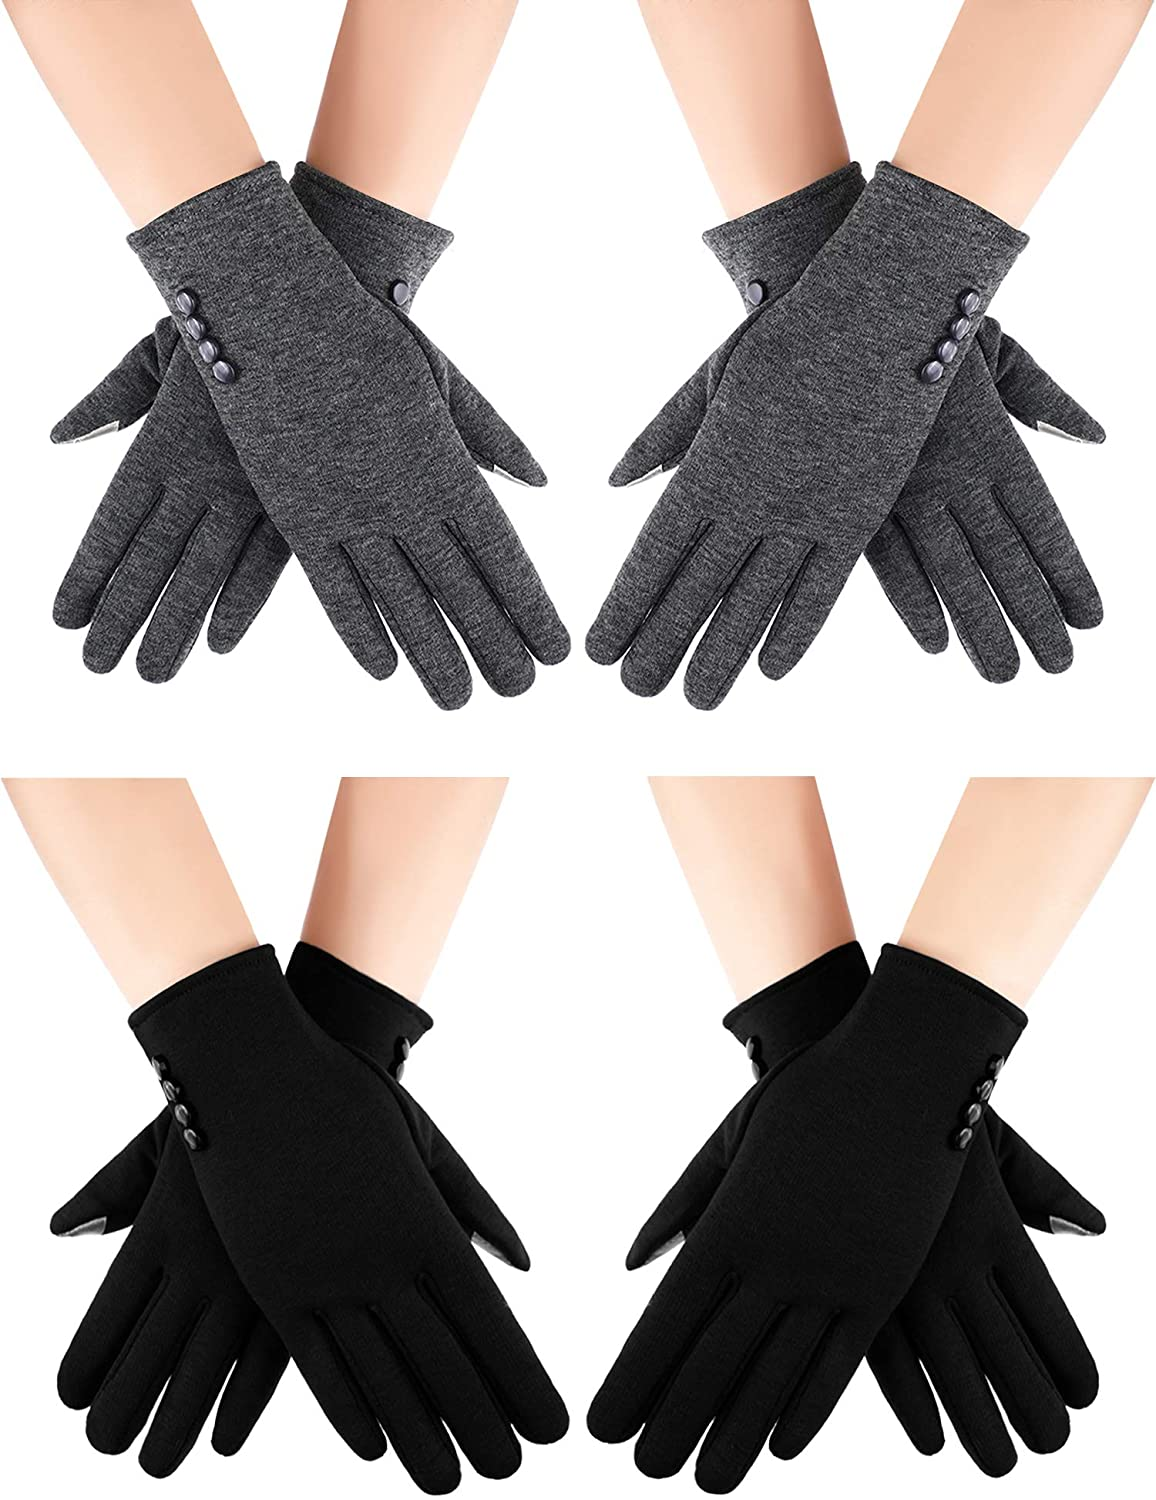 4 Pairs Women Winter Touch Screen Gloves Windproof Texting Warm Winter Gloves